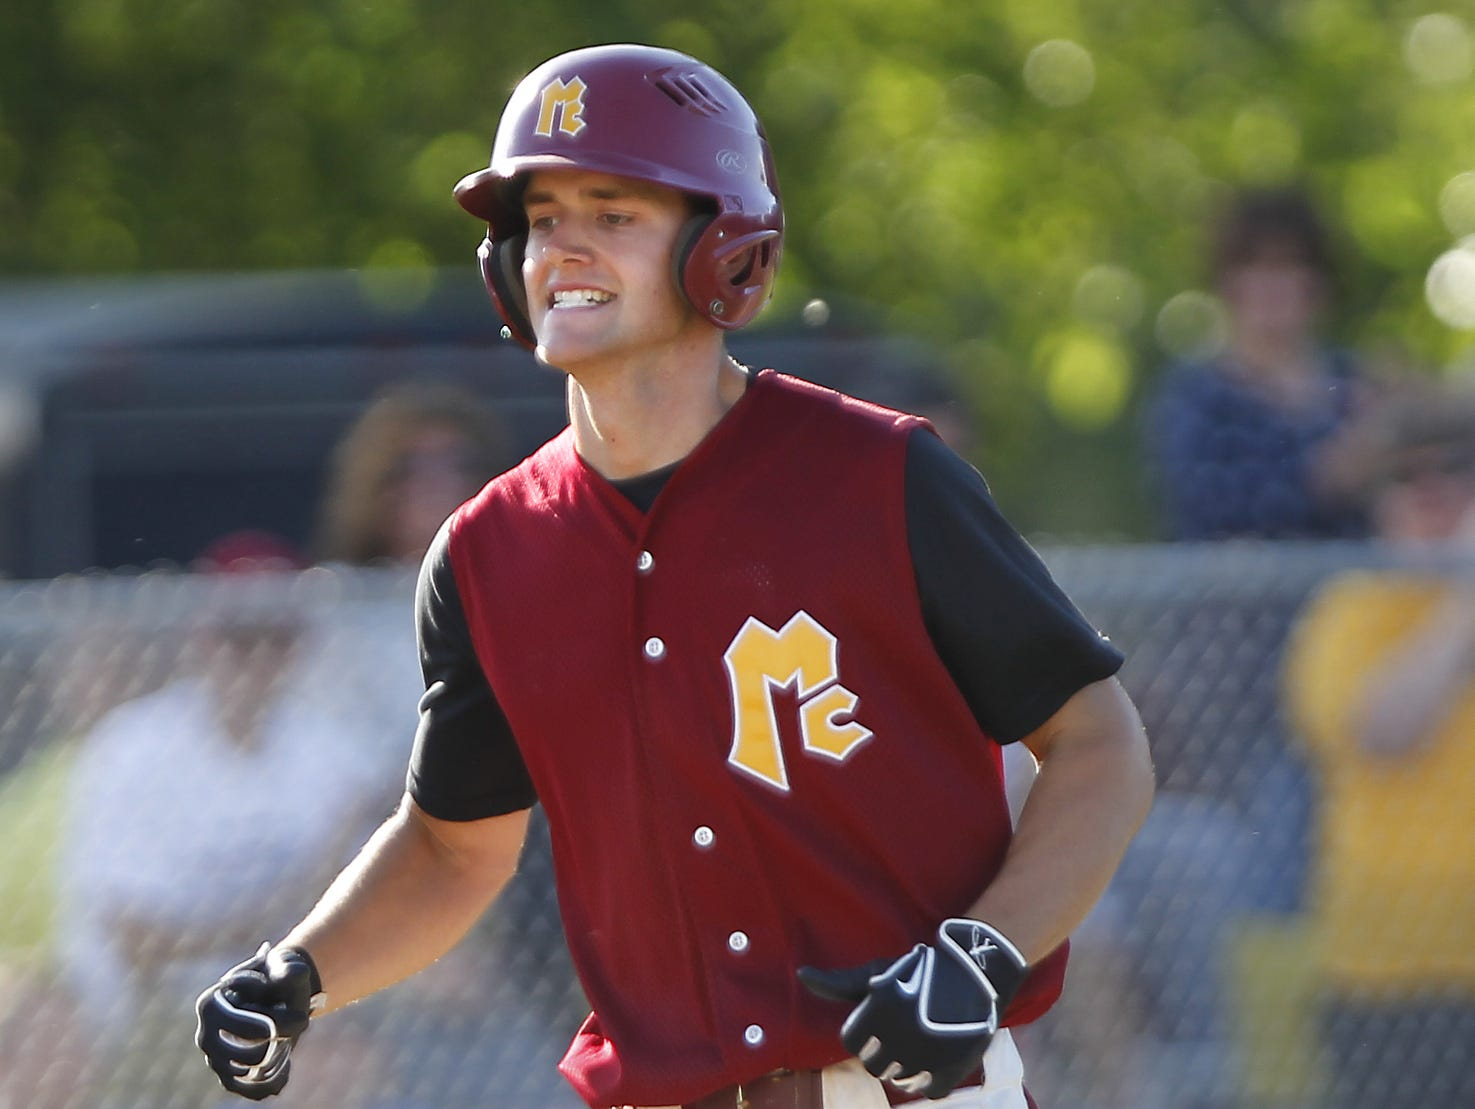 McCutcheon's Braden Giroux is all smiles as he heads for home plate after hitting a two-run home run in the bottom of the third inning against Harrison in the North Central Conference baseball championship Monday, May 18, 2015, at McCutcheon High School. Giroux's homer put the Mavericks up 7-1 at the time. McCutcheon went on to beat Harrison 10-1. This is the first year in the NCC for both teams.